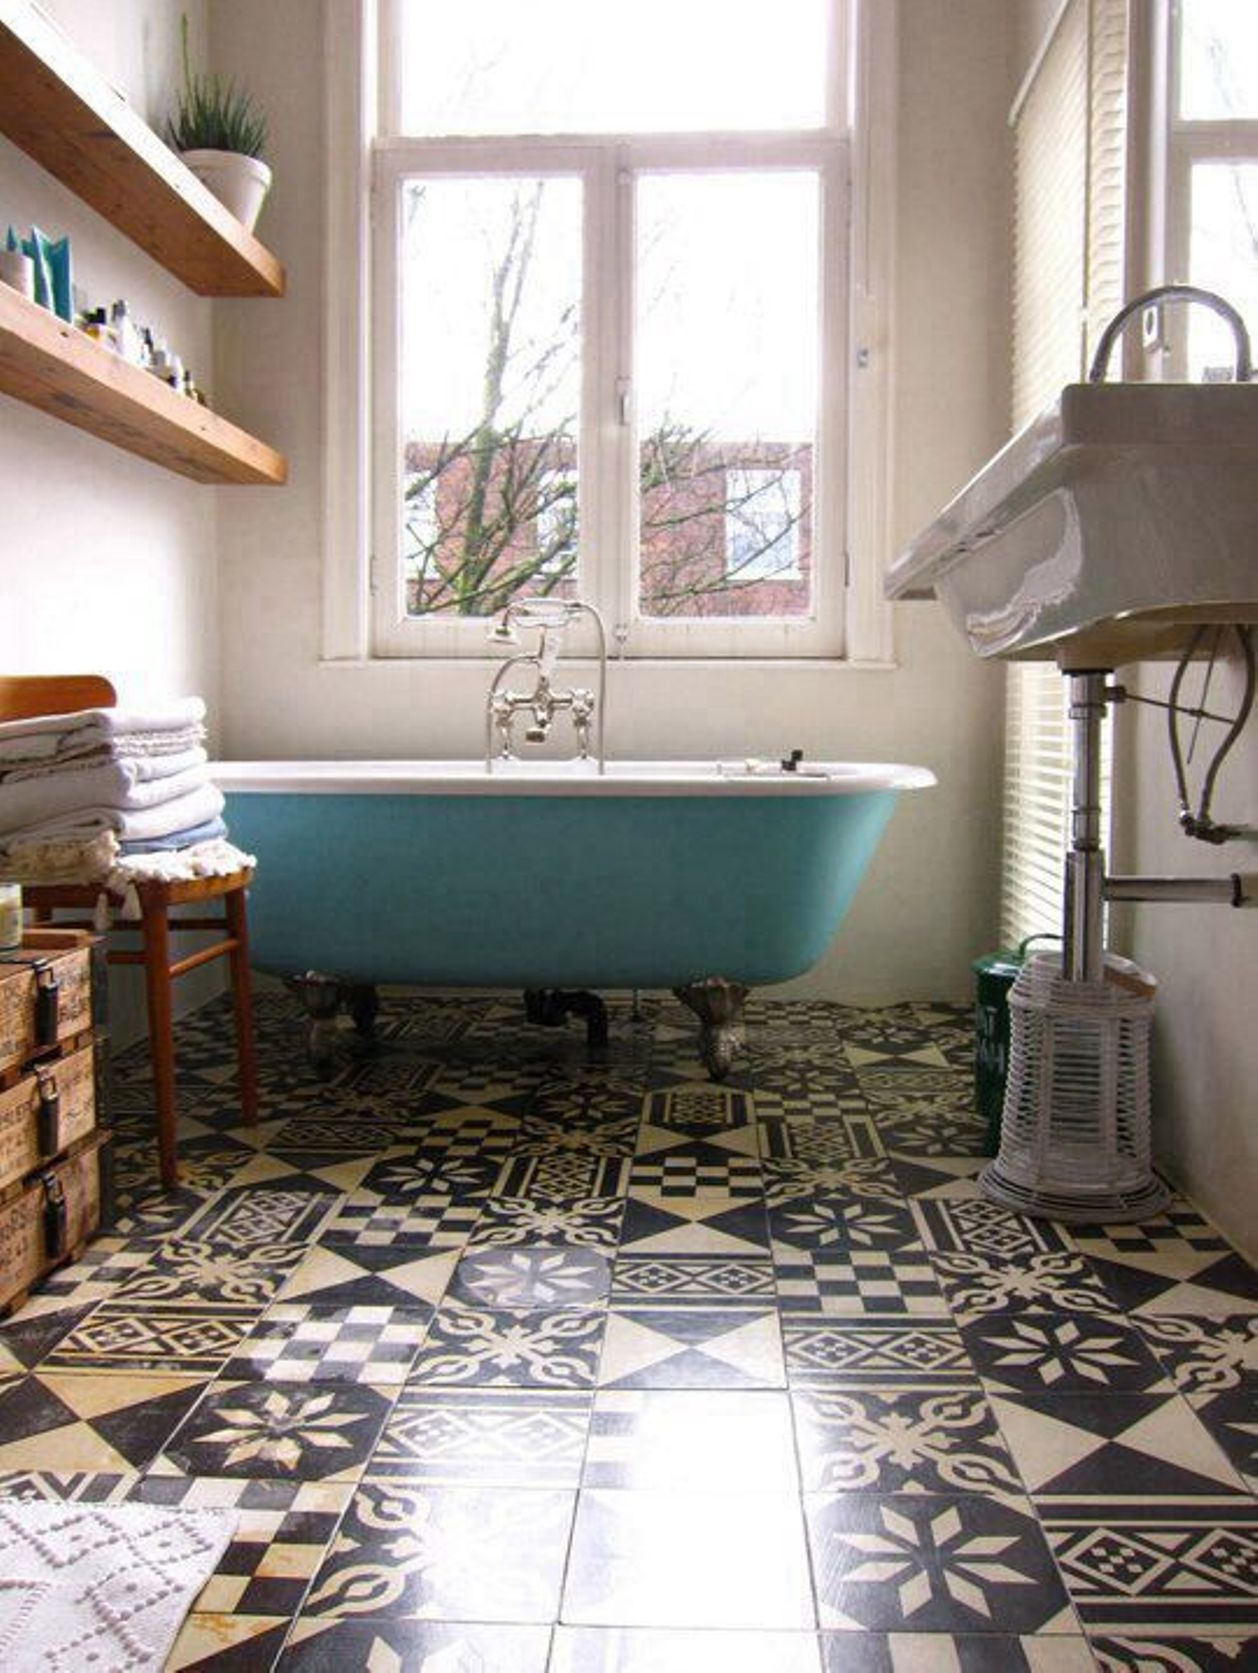 20 great pictures and ideas of vintage bathroom floor tile patterns Bathroom flooring tile